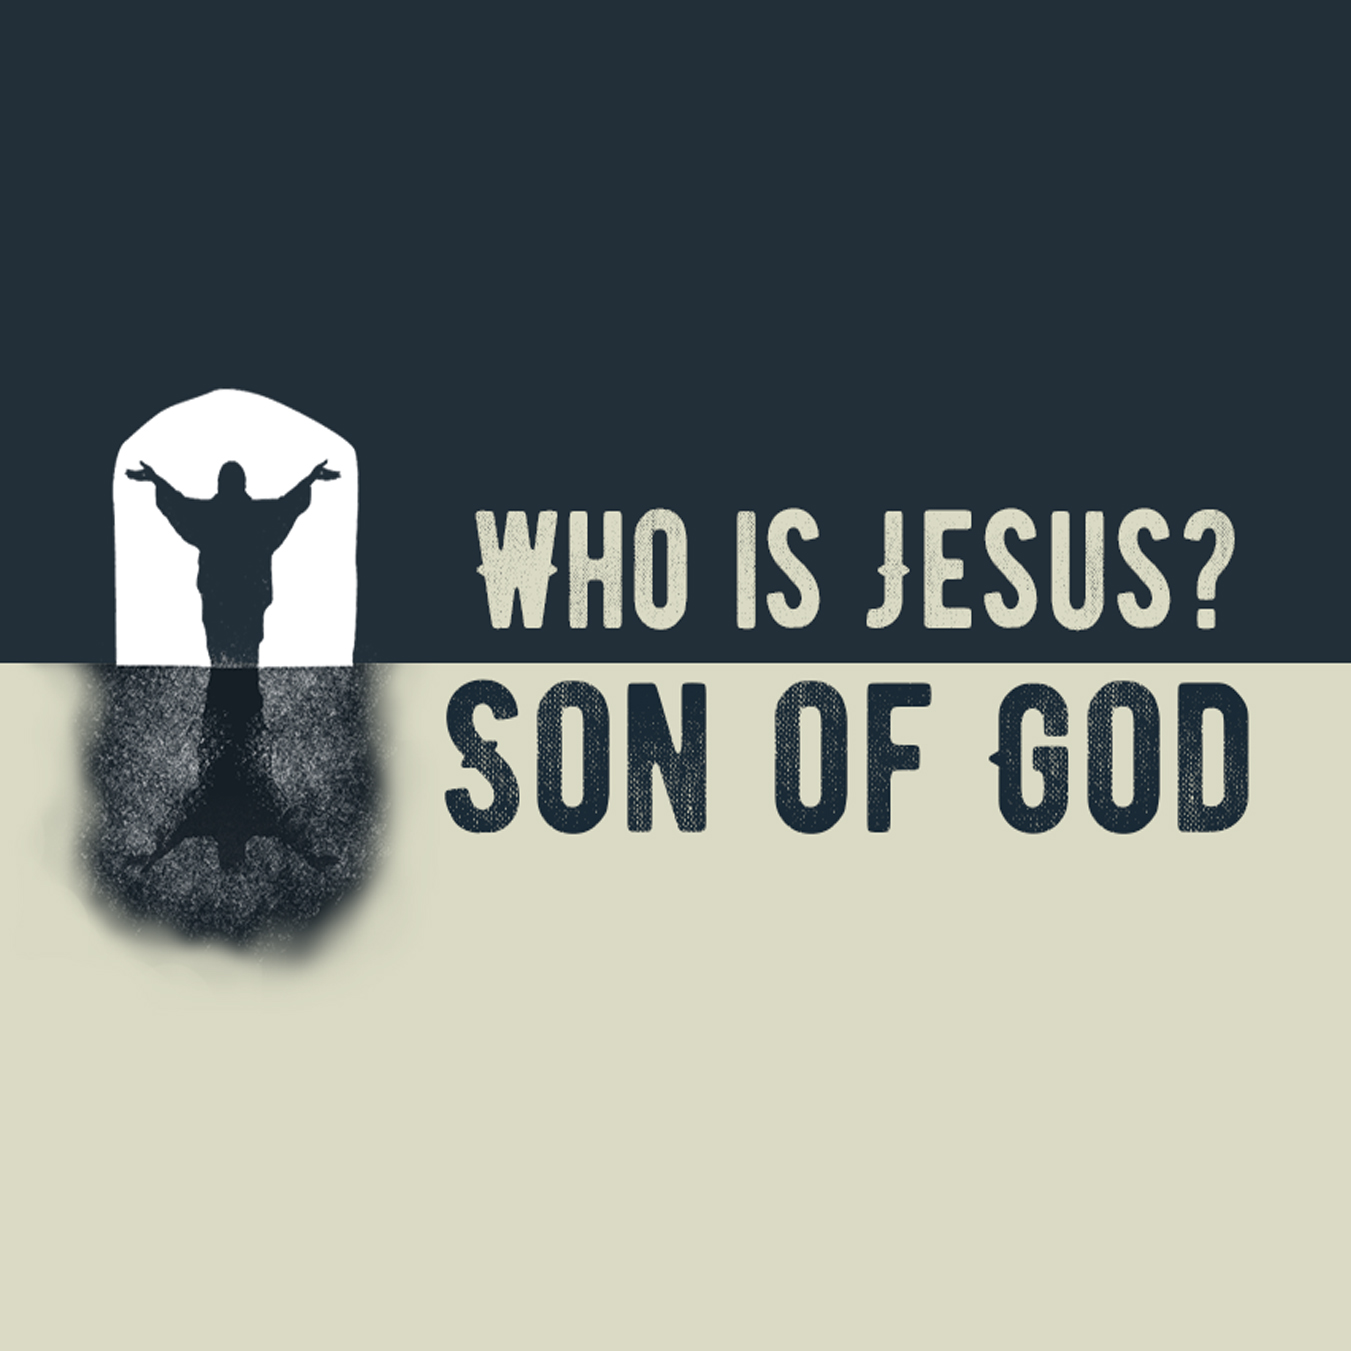 Son of God, Savior